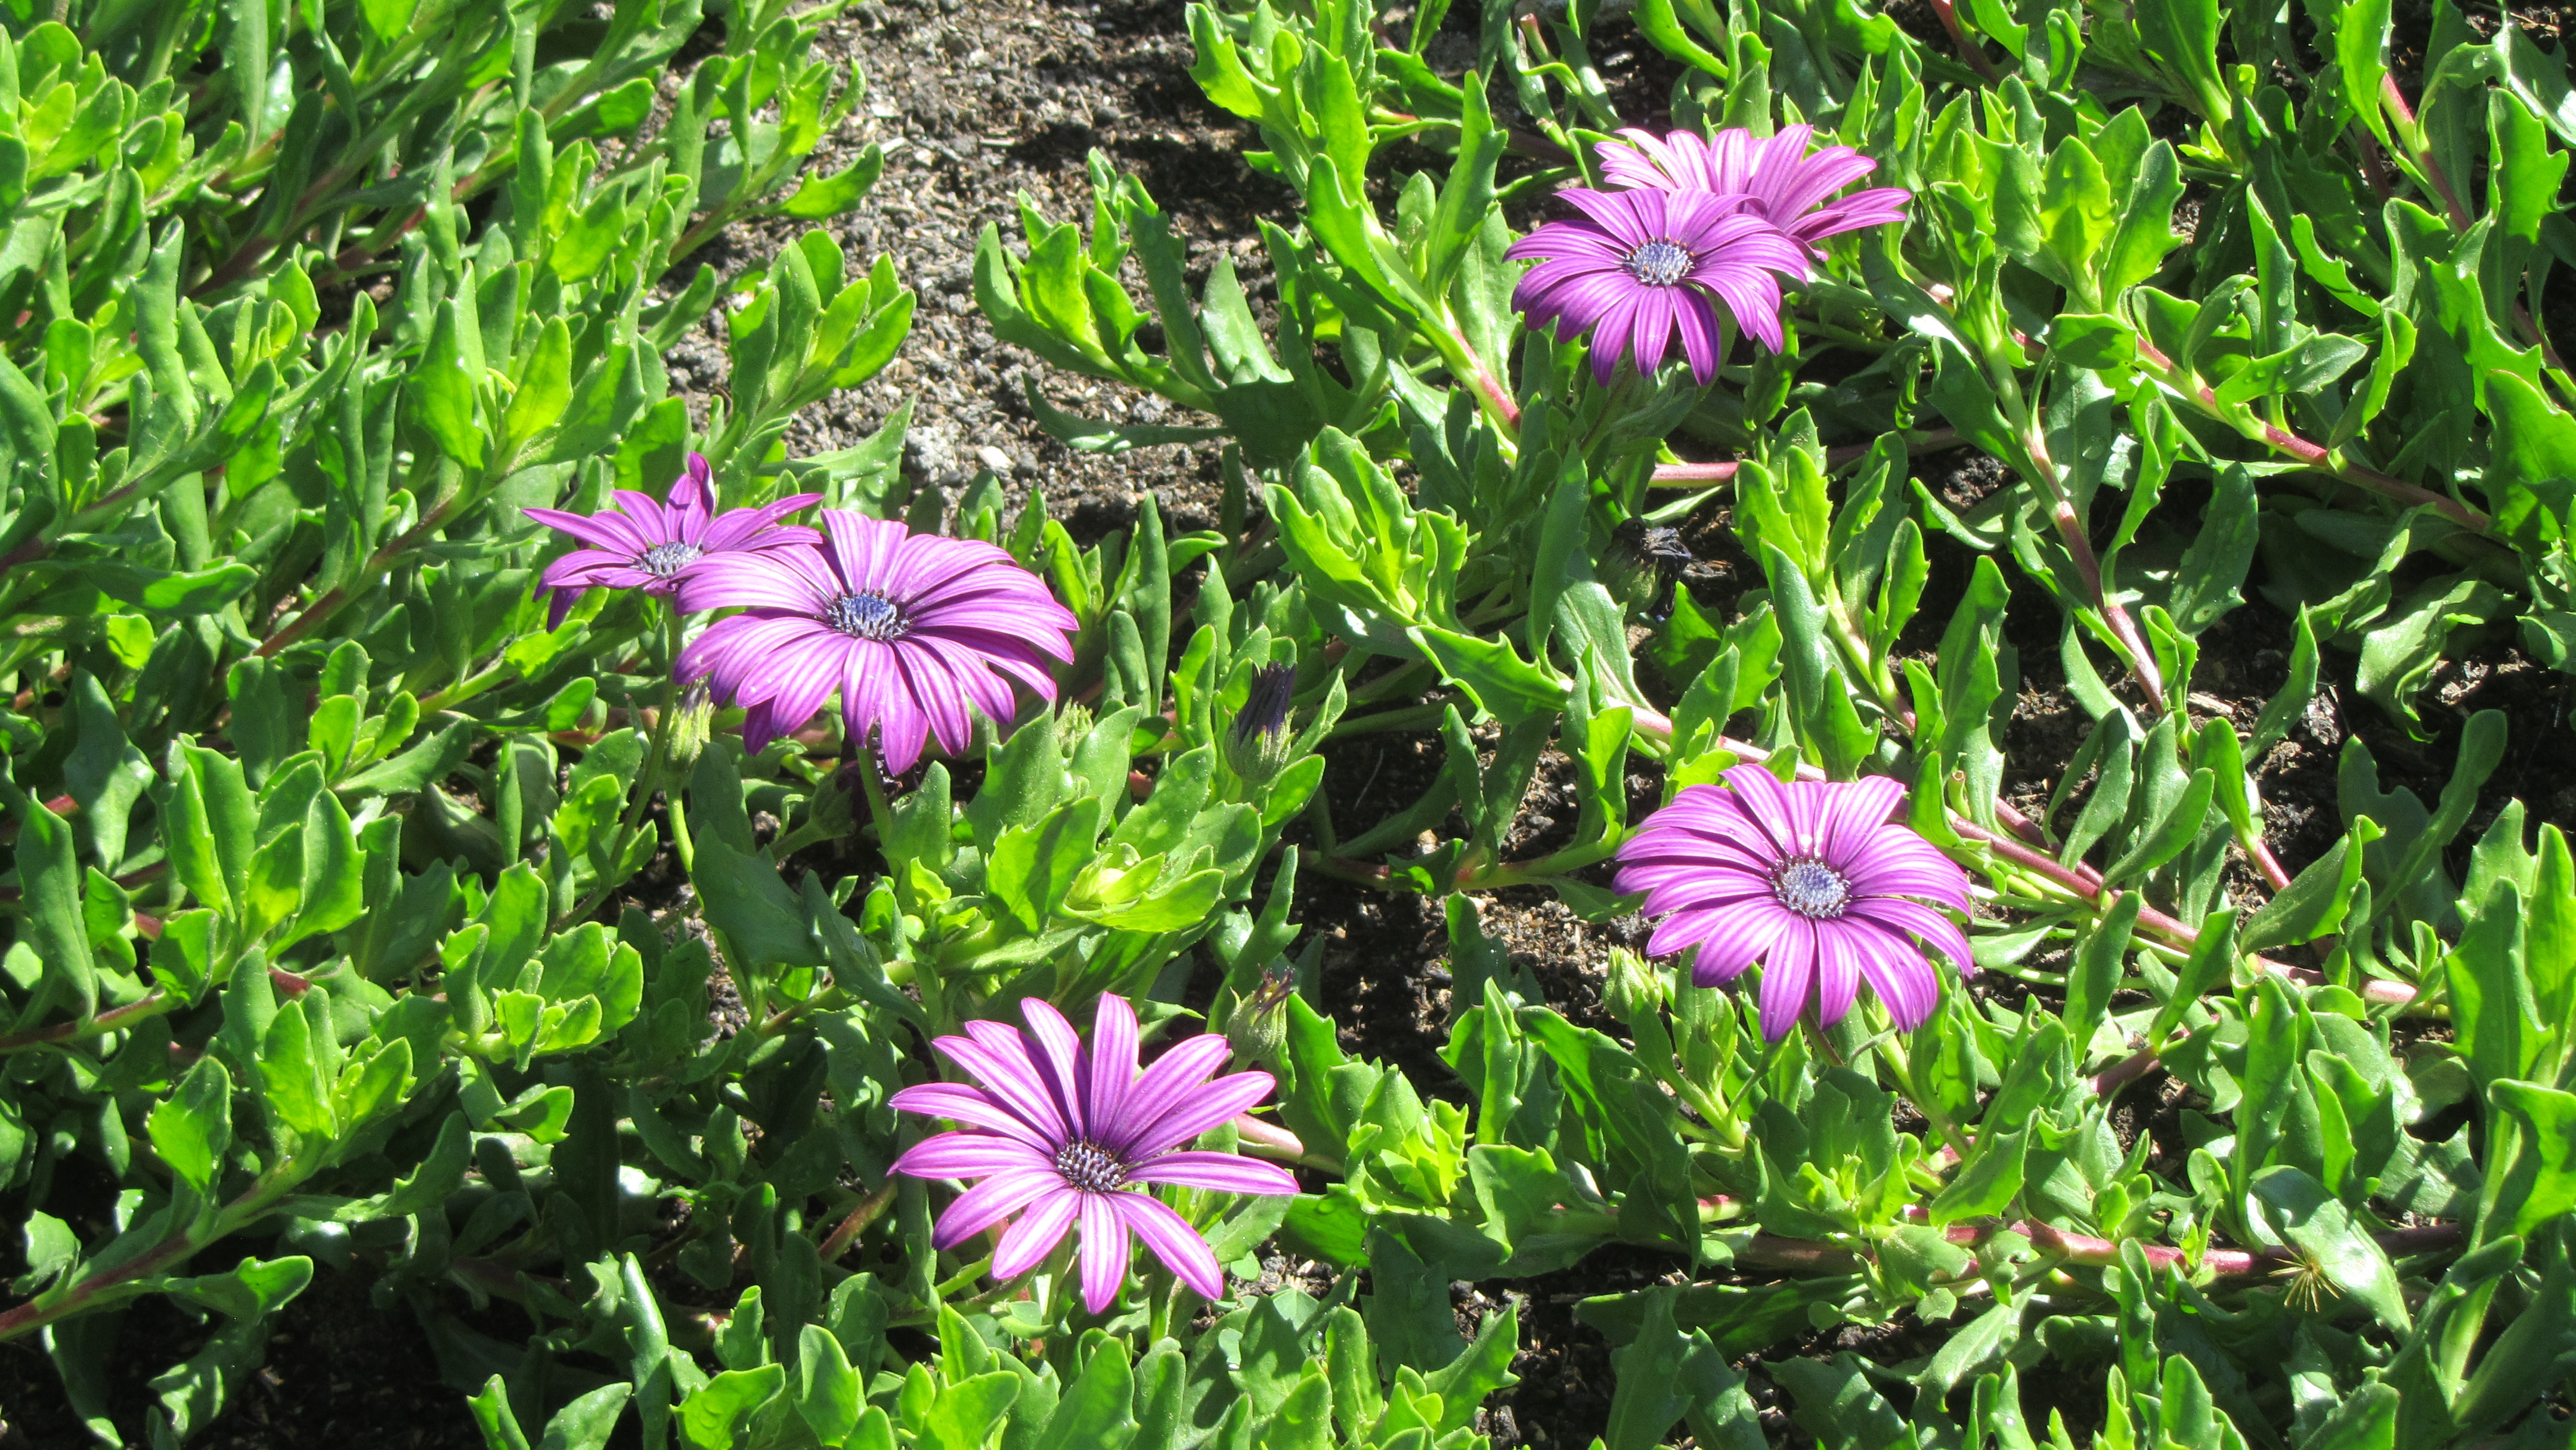 Floral friday osteospermum fruticosum nowathome it grows between 6 and 12 inches tall and can spread four to six feet in width the dark centered daisy like flowers range in color from deep purple to izmirmasajfo